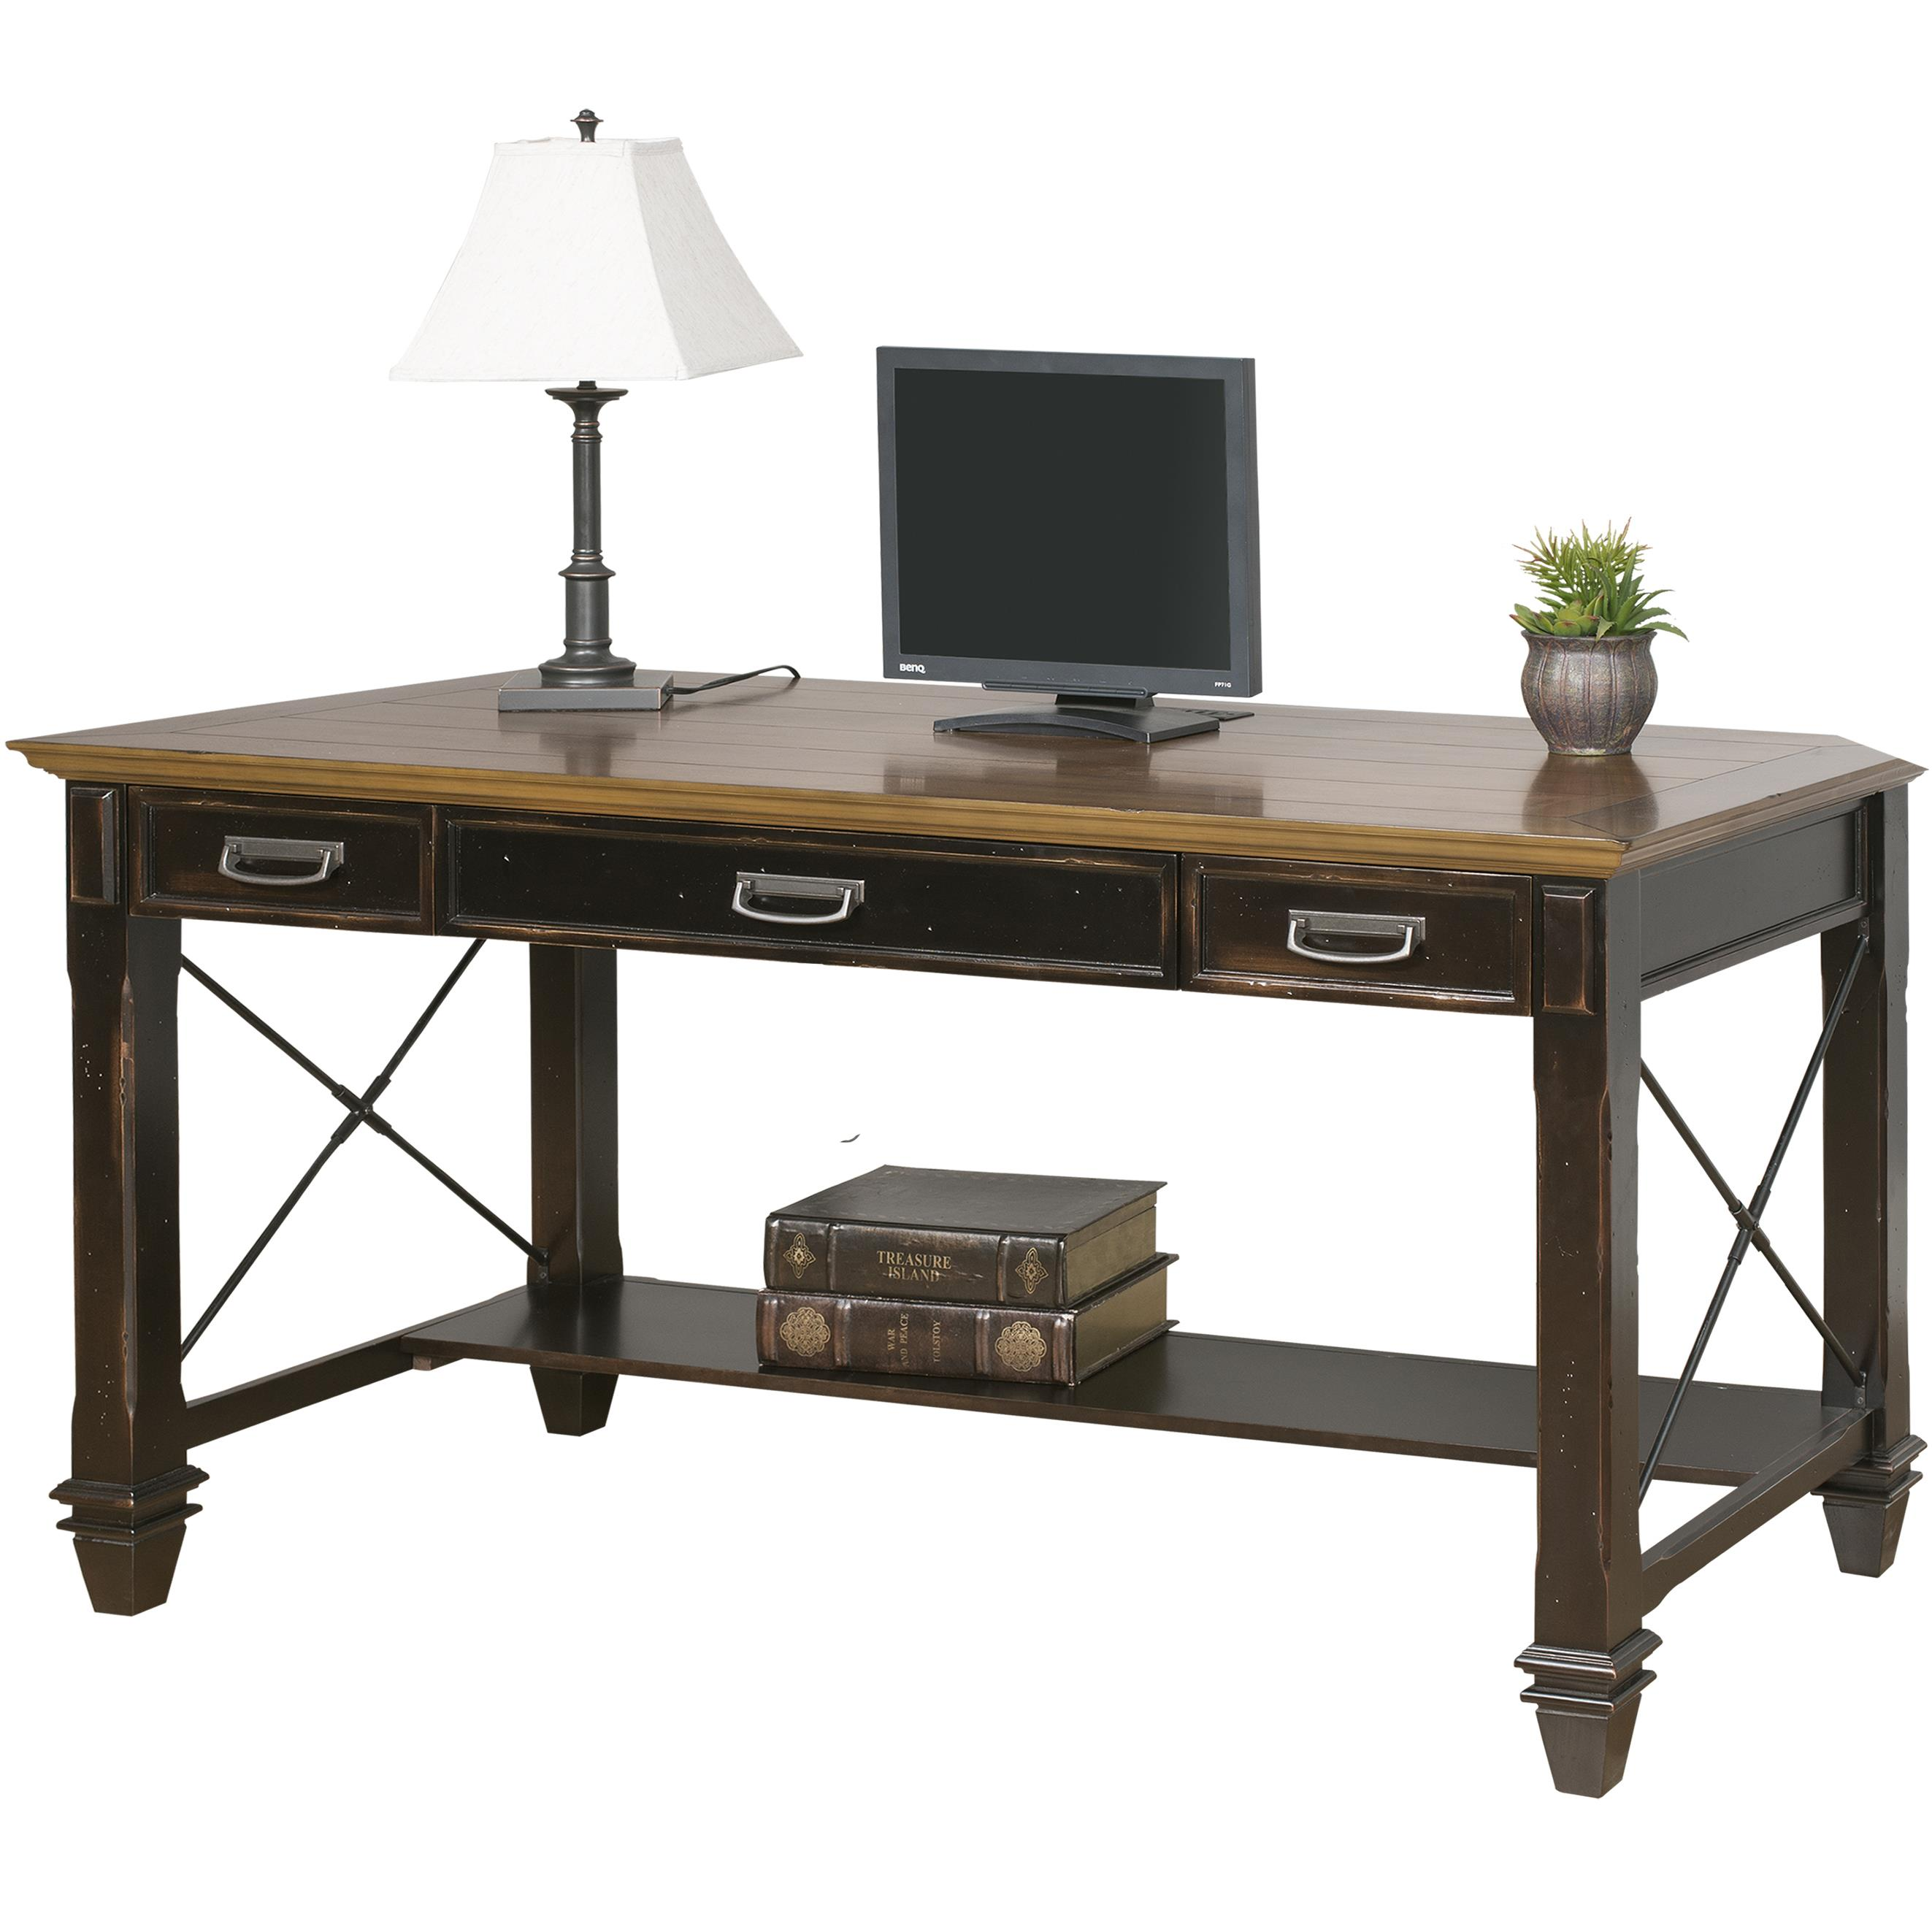 kathy ireland Home by Martin Hartford Writing Desk - Item Number: IMHF384